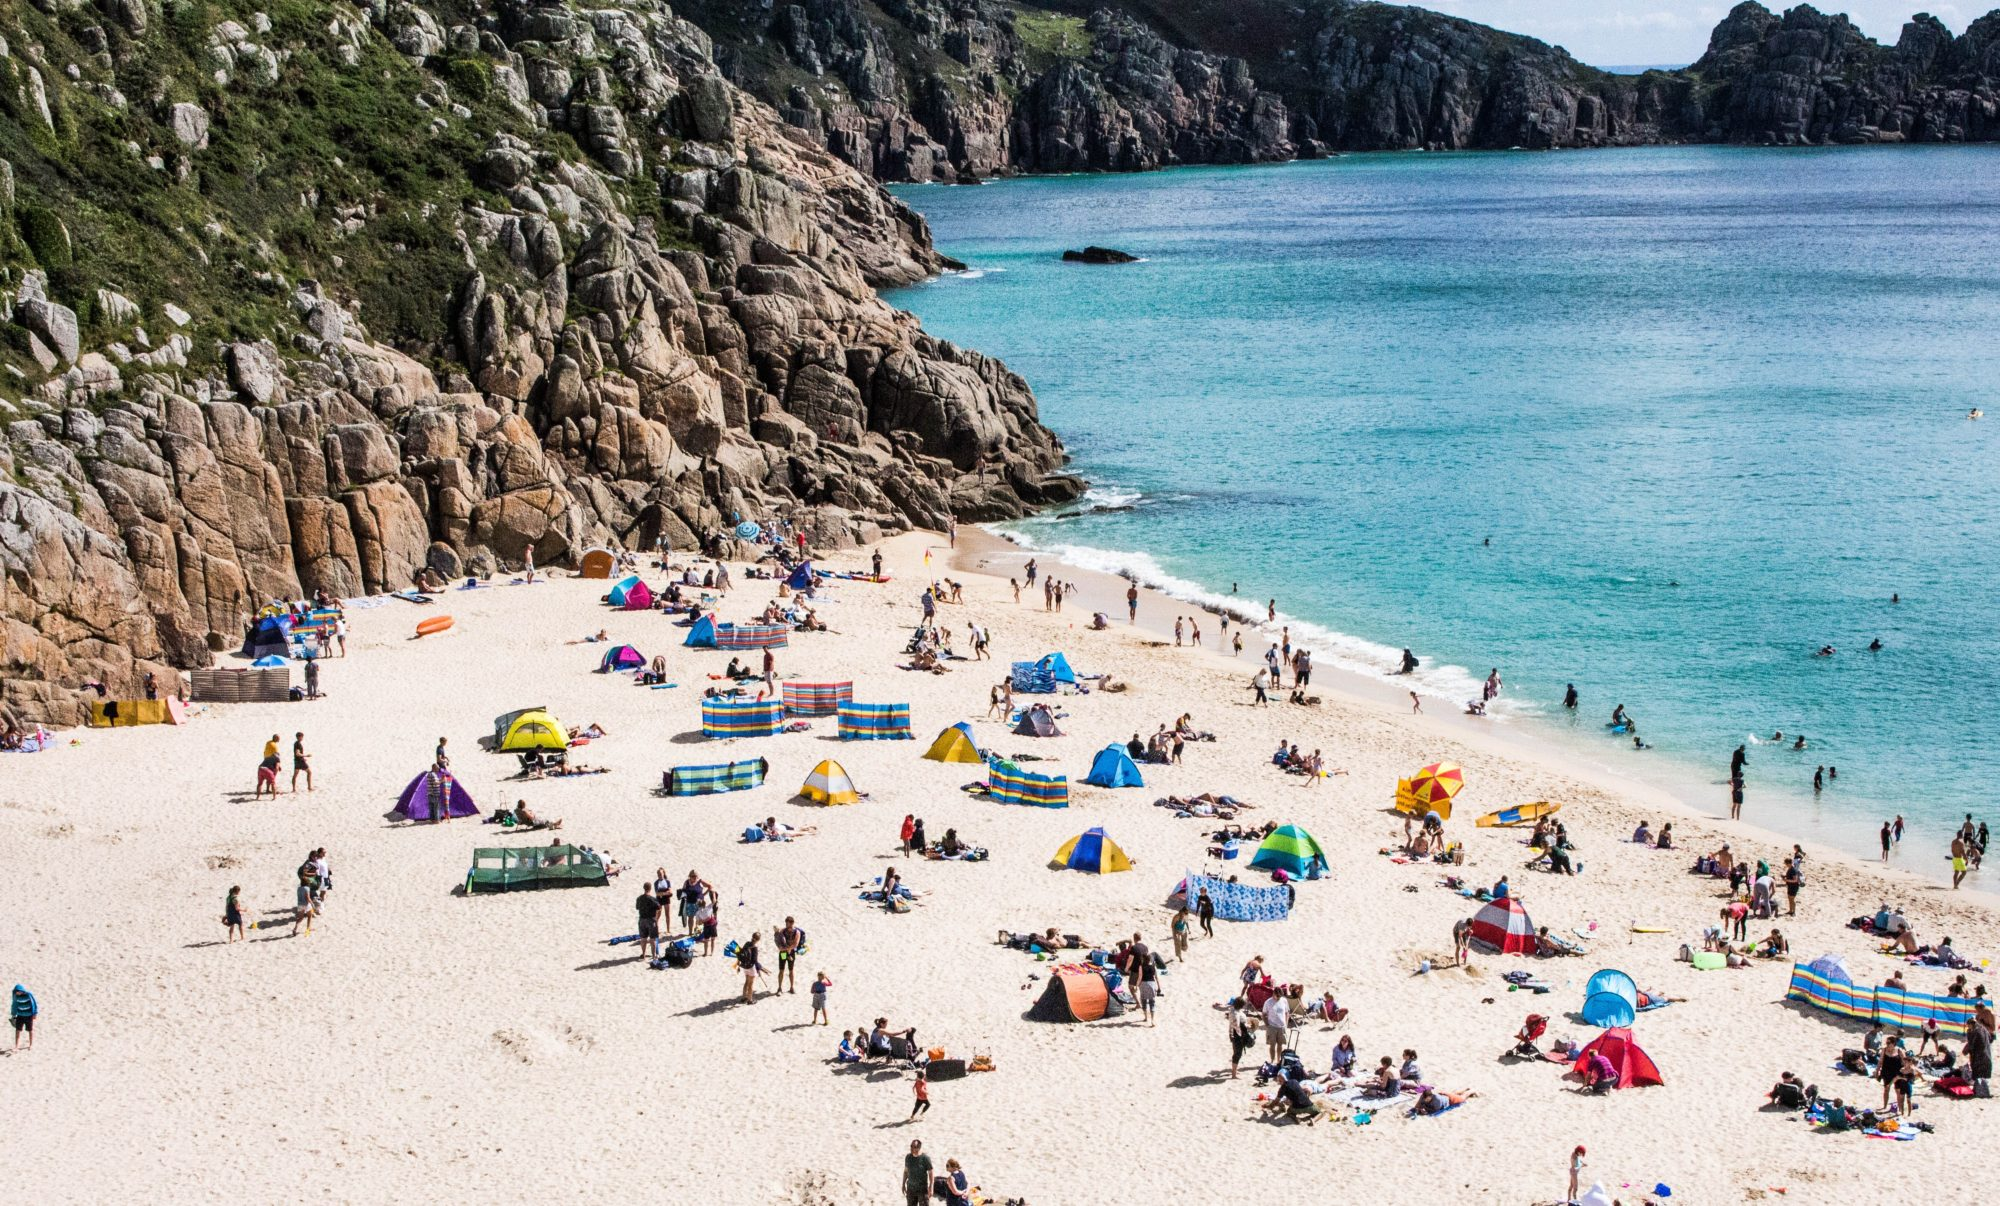 Porthcurno Beach, Porthcurno, United Kingdom